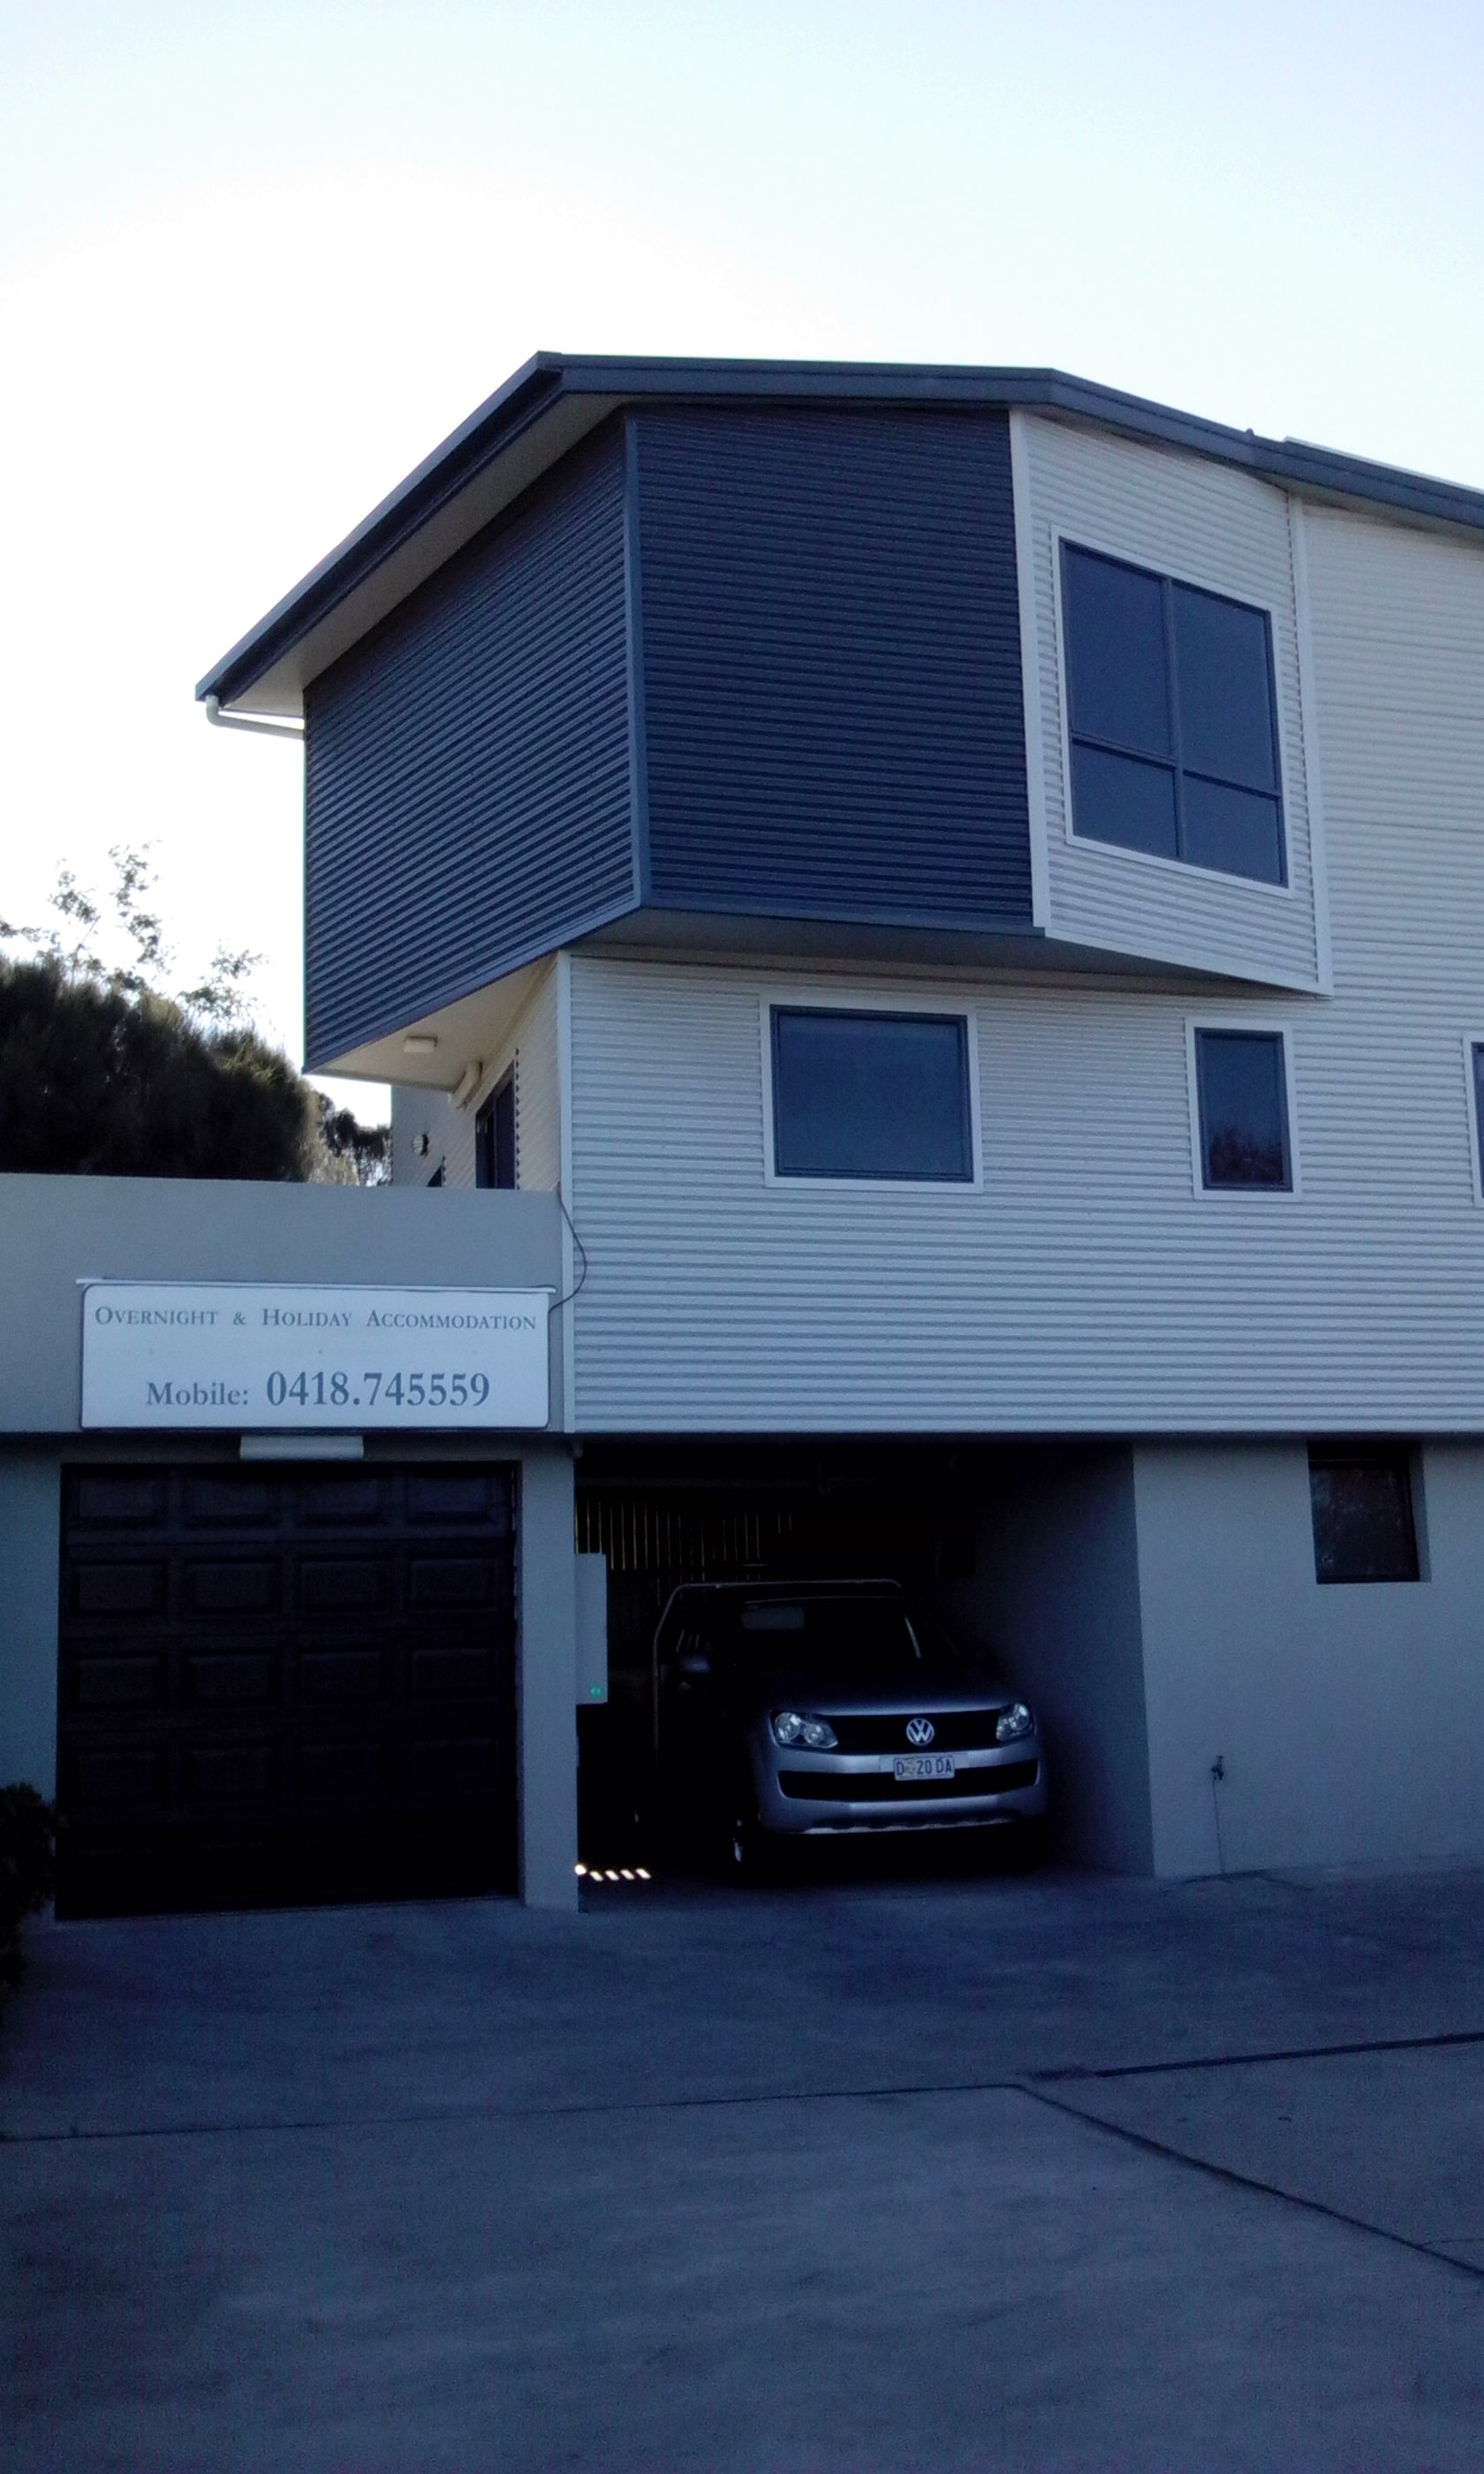 Hawley Beachside Accommodation - Whitsundays Tourism